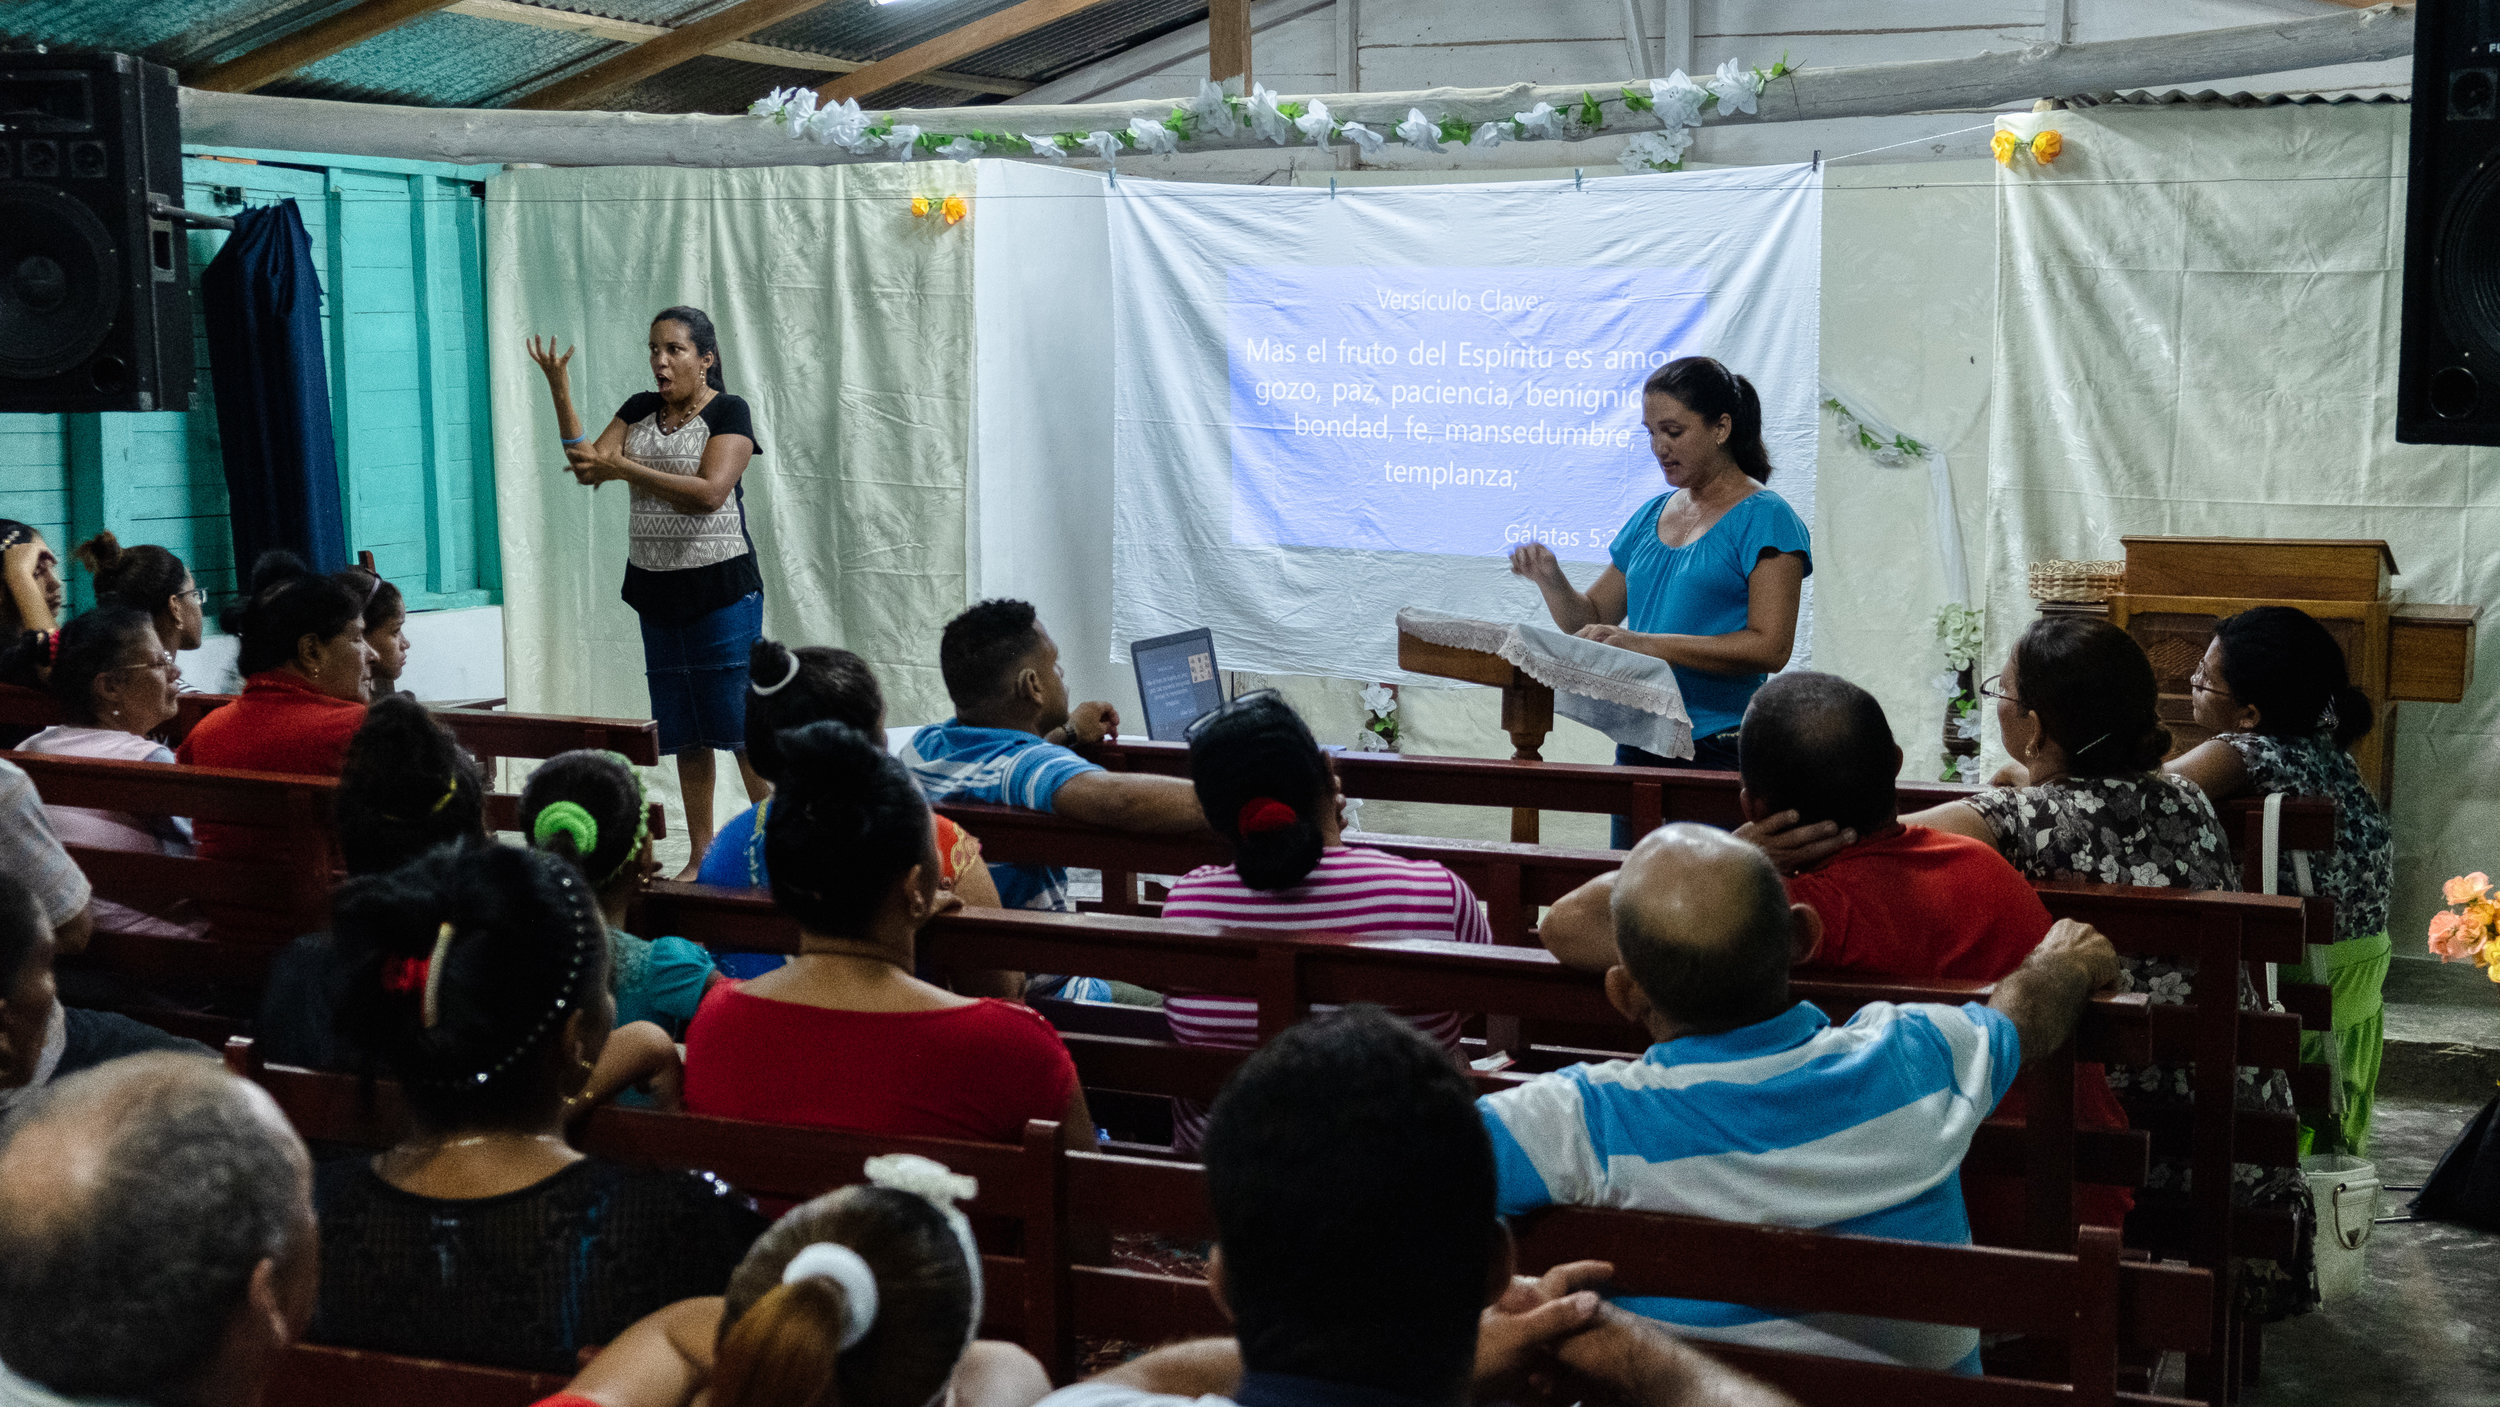 Ocujal is such a small community, that any event at the church even for the deaf is attended by the hearing folks